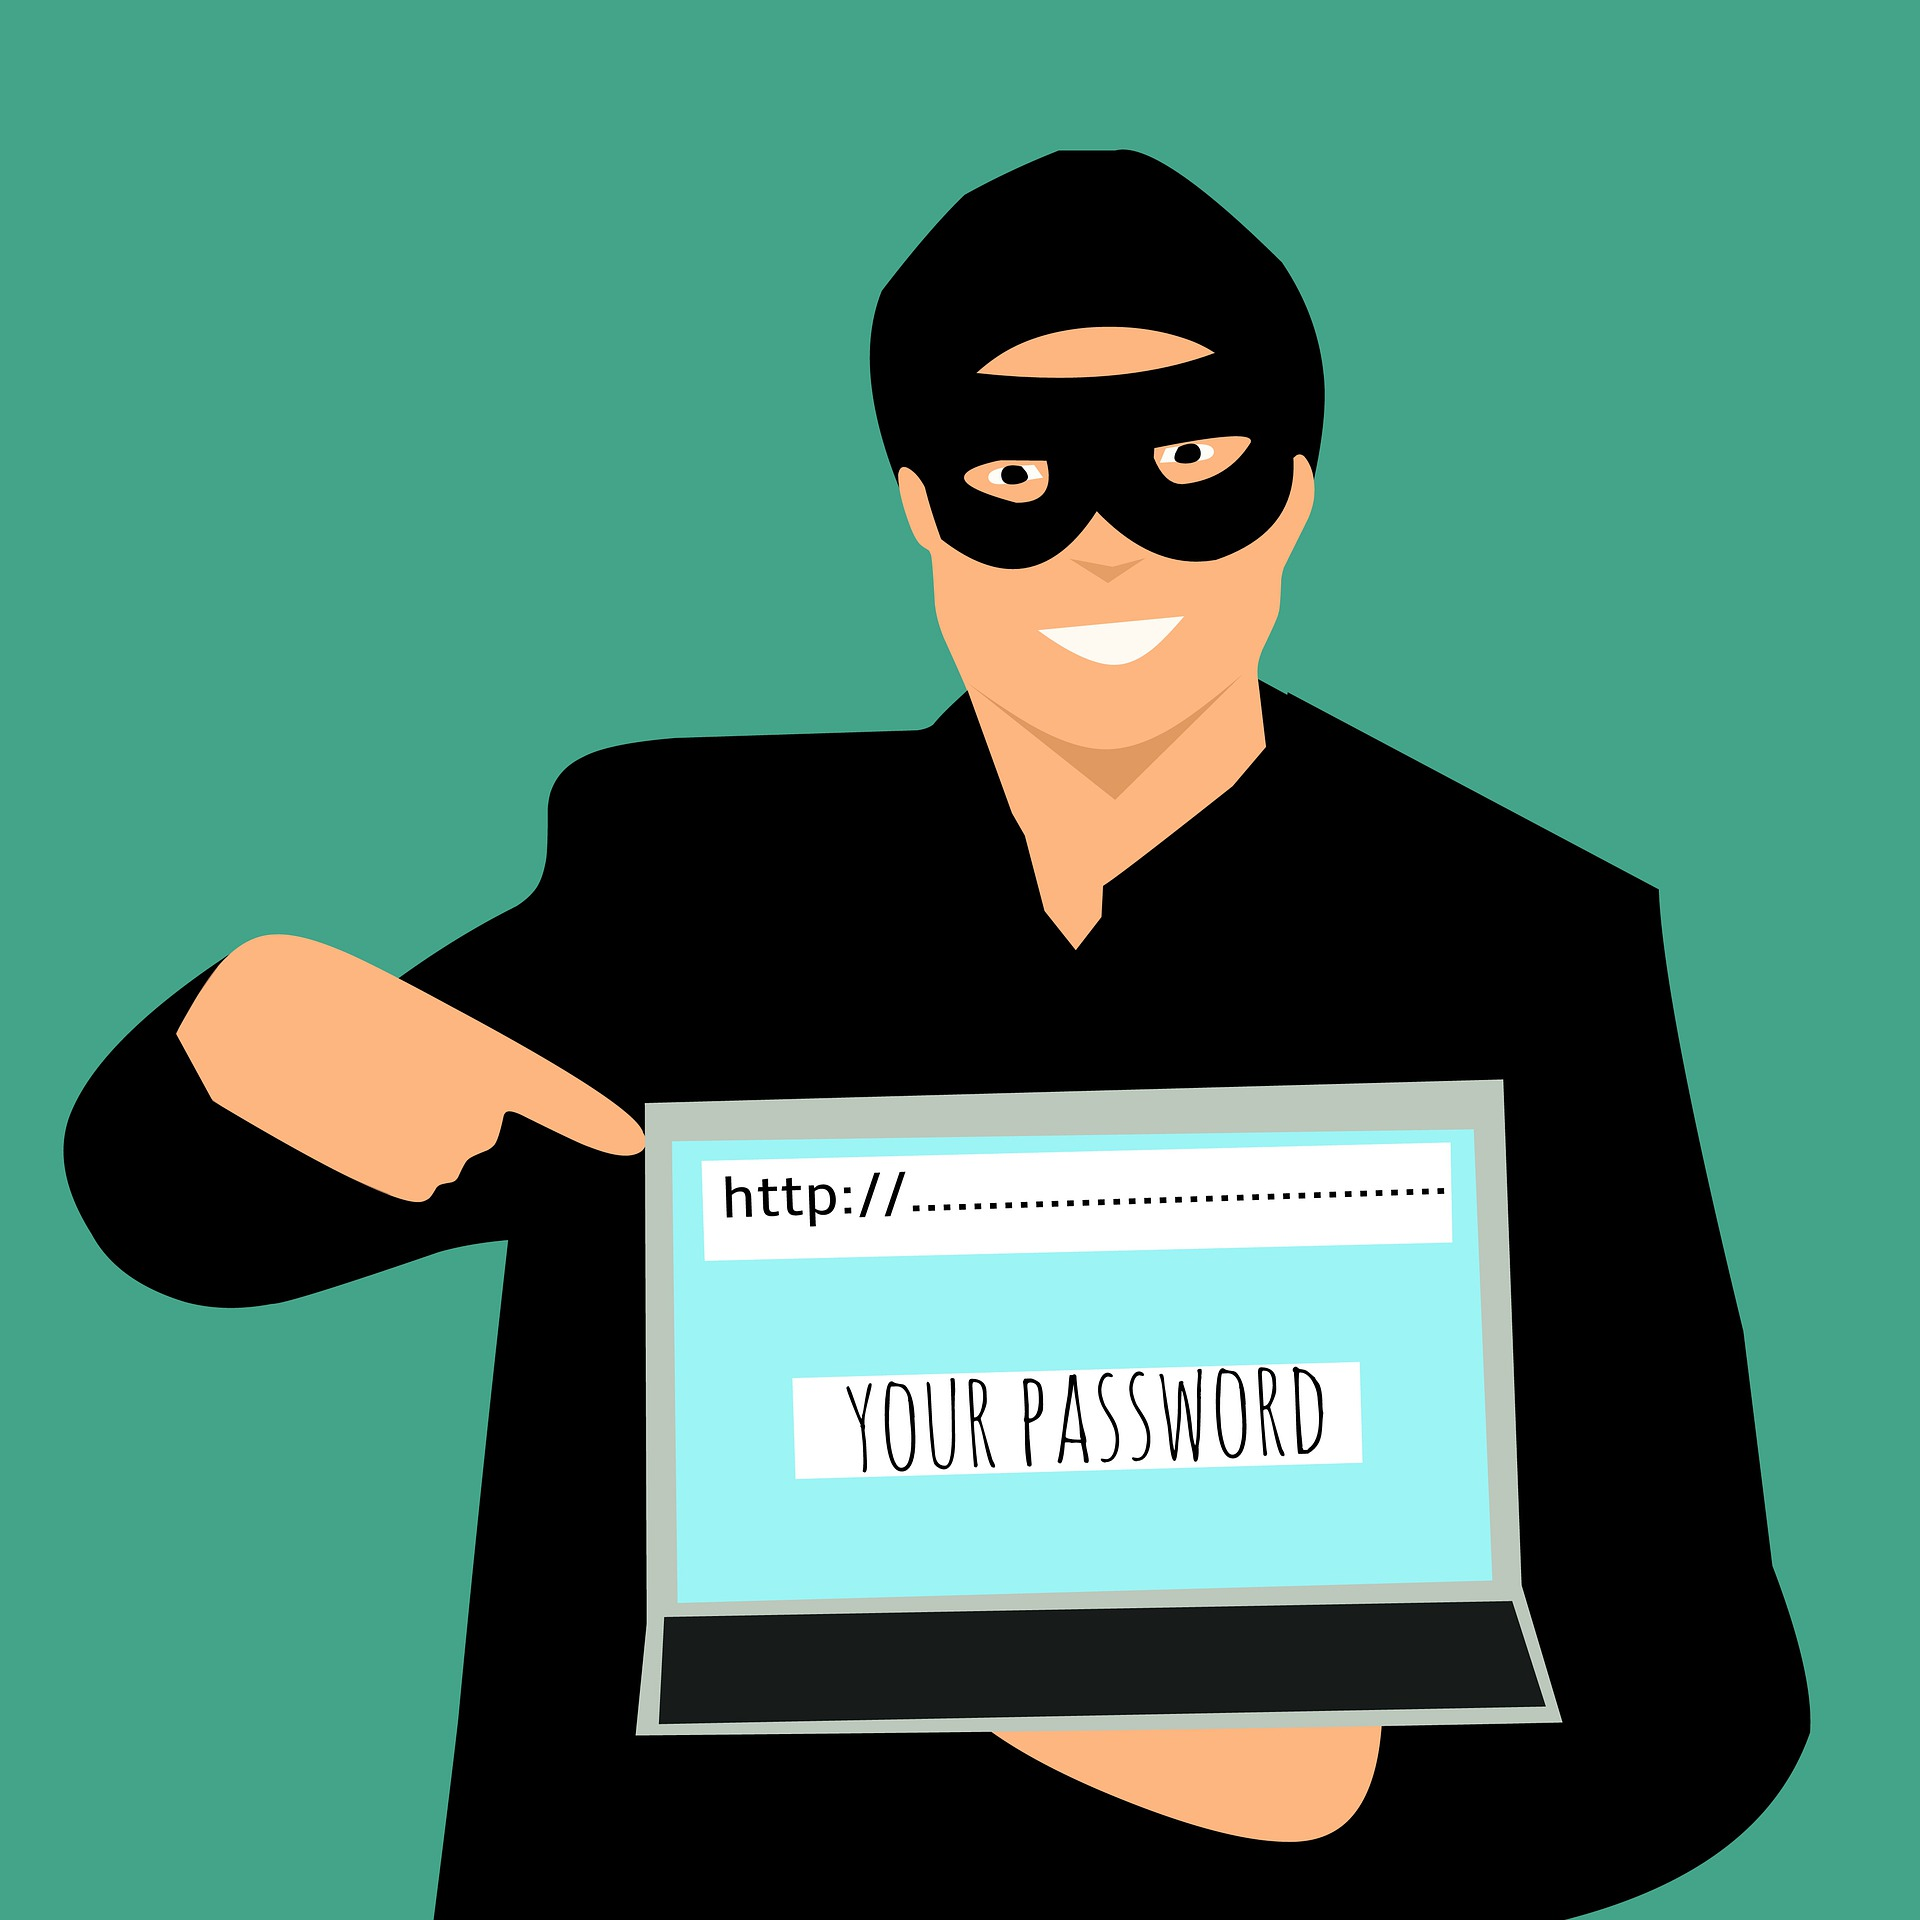 Hacker man holding computer asking for password on Pro Tax & Accounting Blog